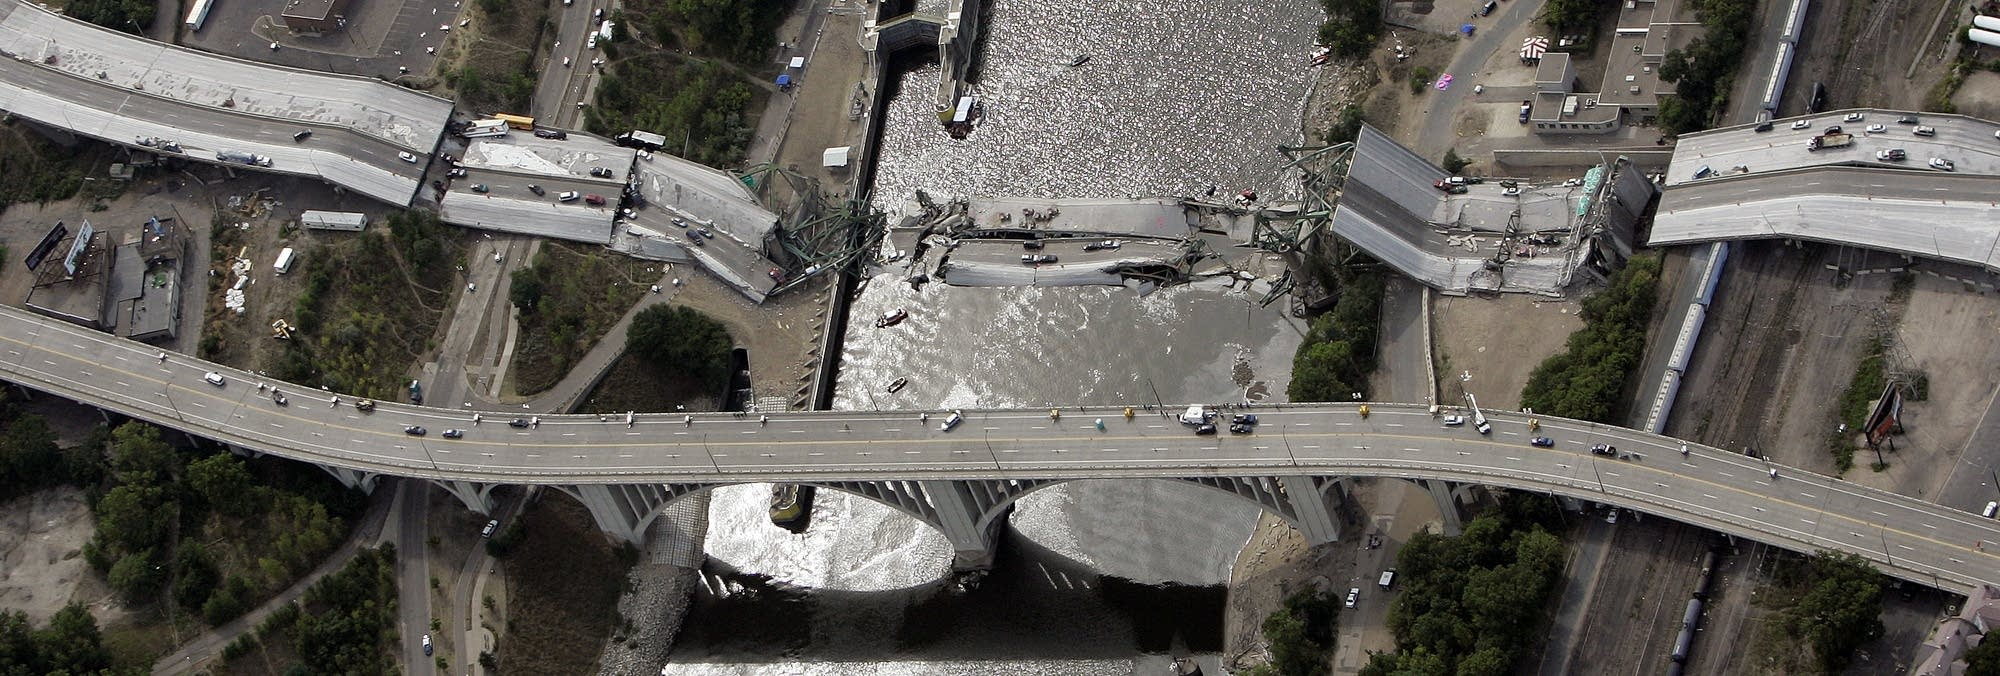 An aerial view of the I-35W bridge that collapsed over the Mississippi.